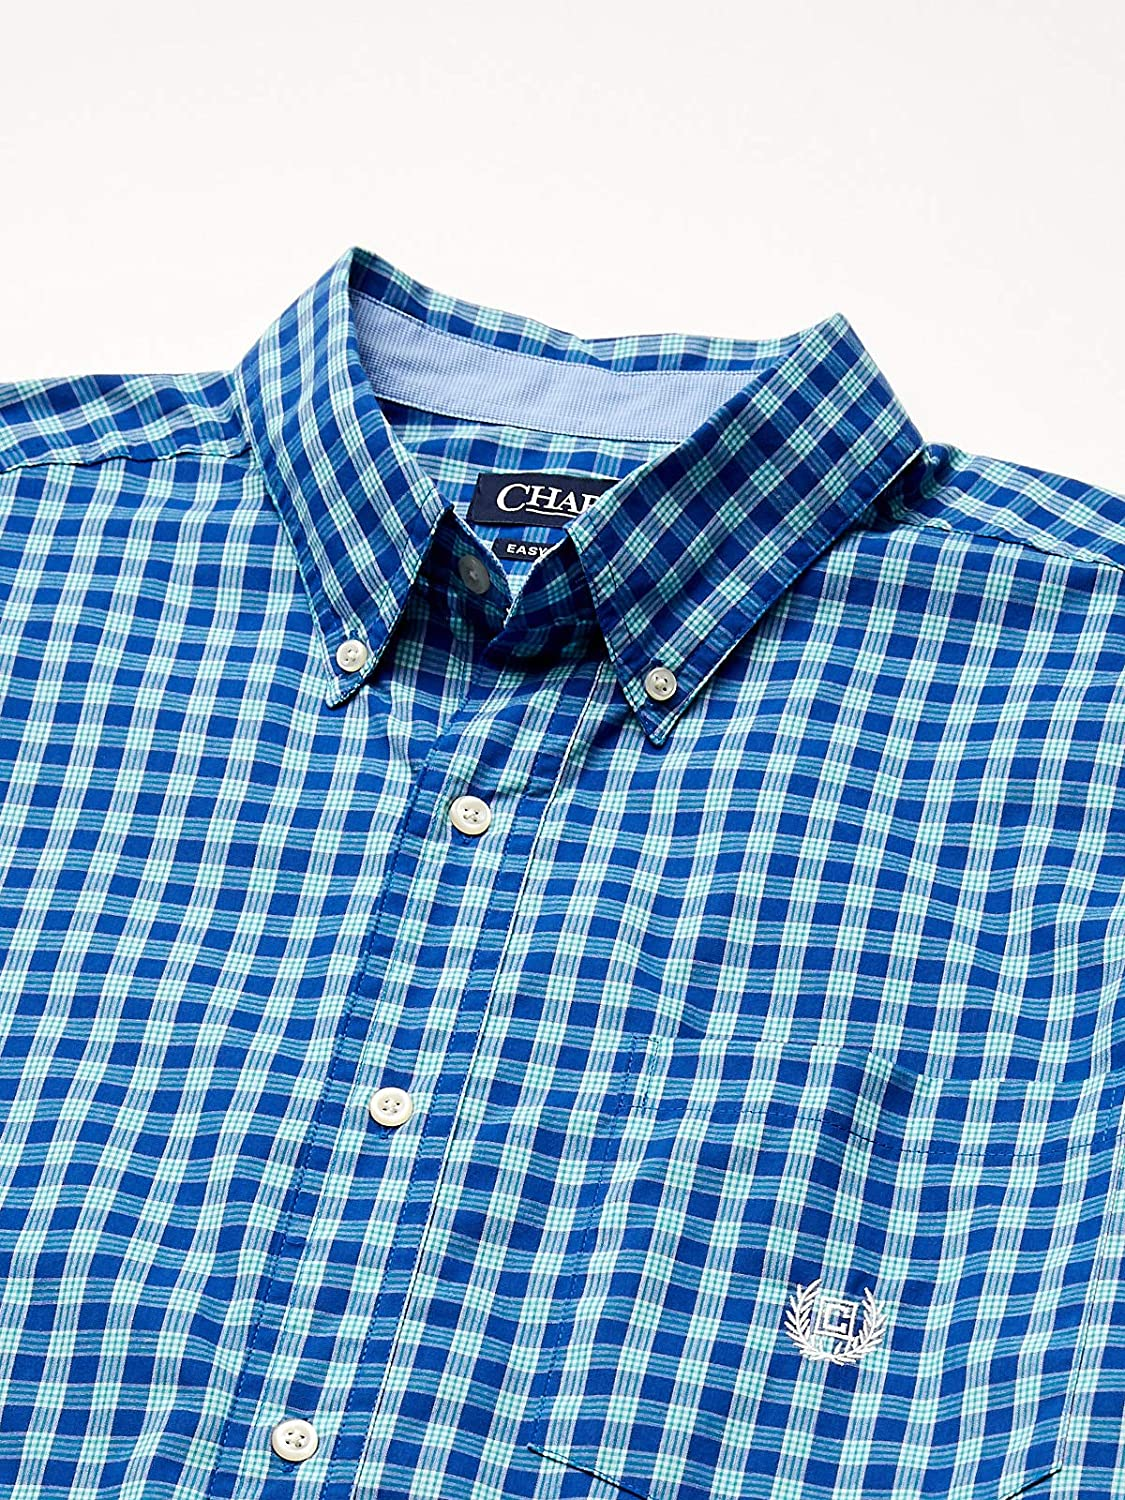 CHAPS Mens Big and Tall Short Sleeve Easy Care Button Down Shirt Button Down Shirt